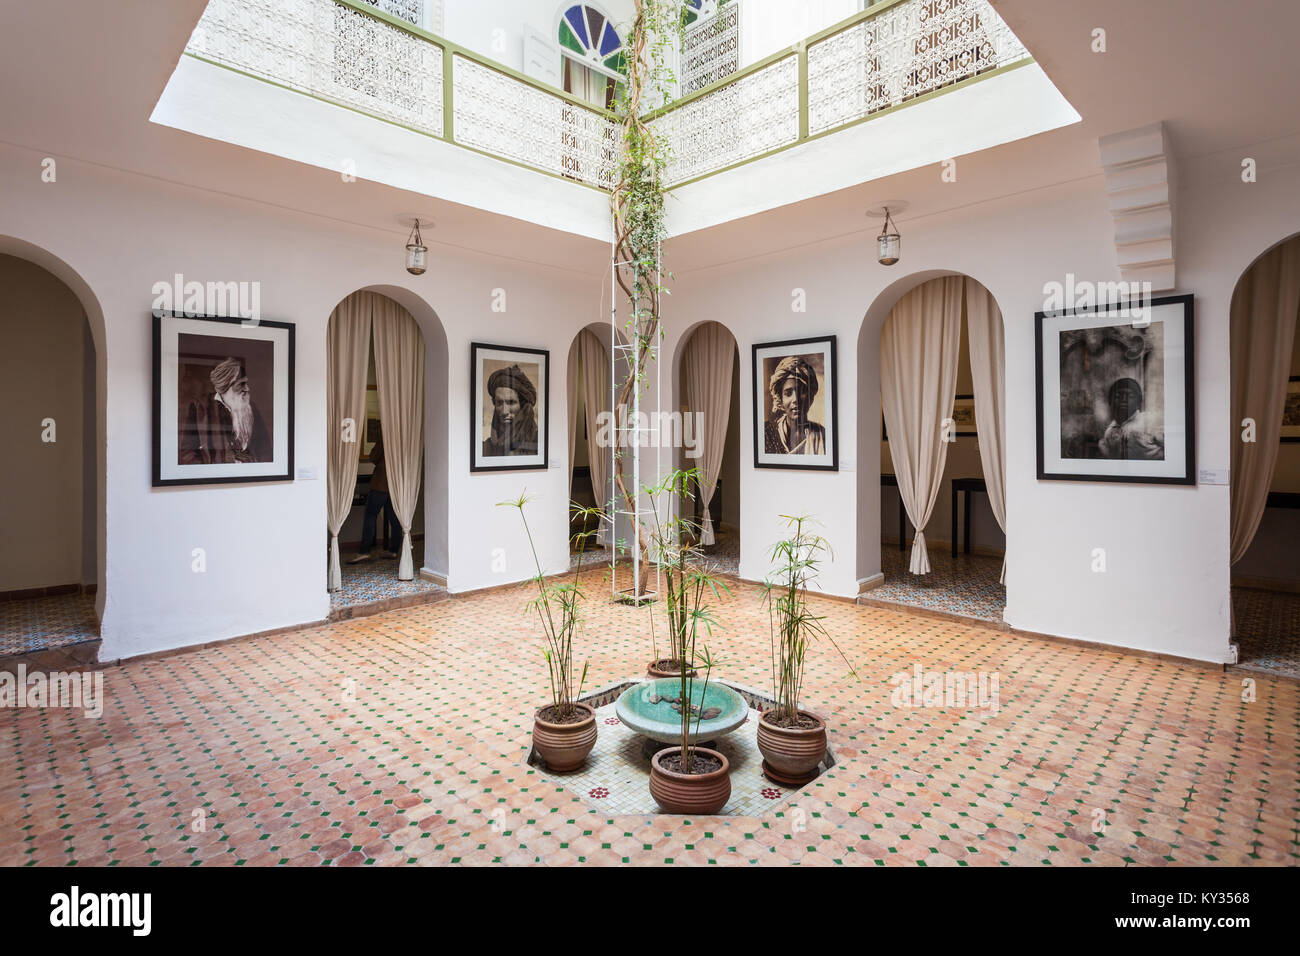 MARRAKECH, MOROCCO - FEBRUARY 22, 2016: The Photography Museum of Marrakesh is located in the Medina, the oldest Stock Photo